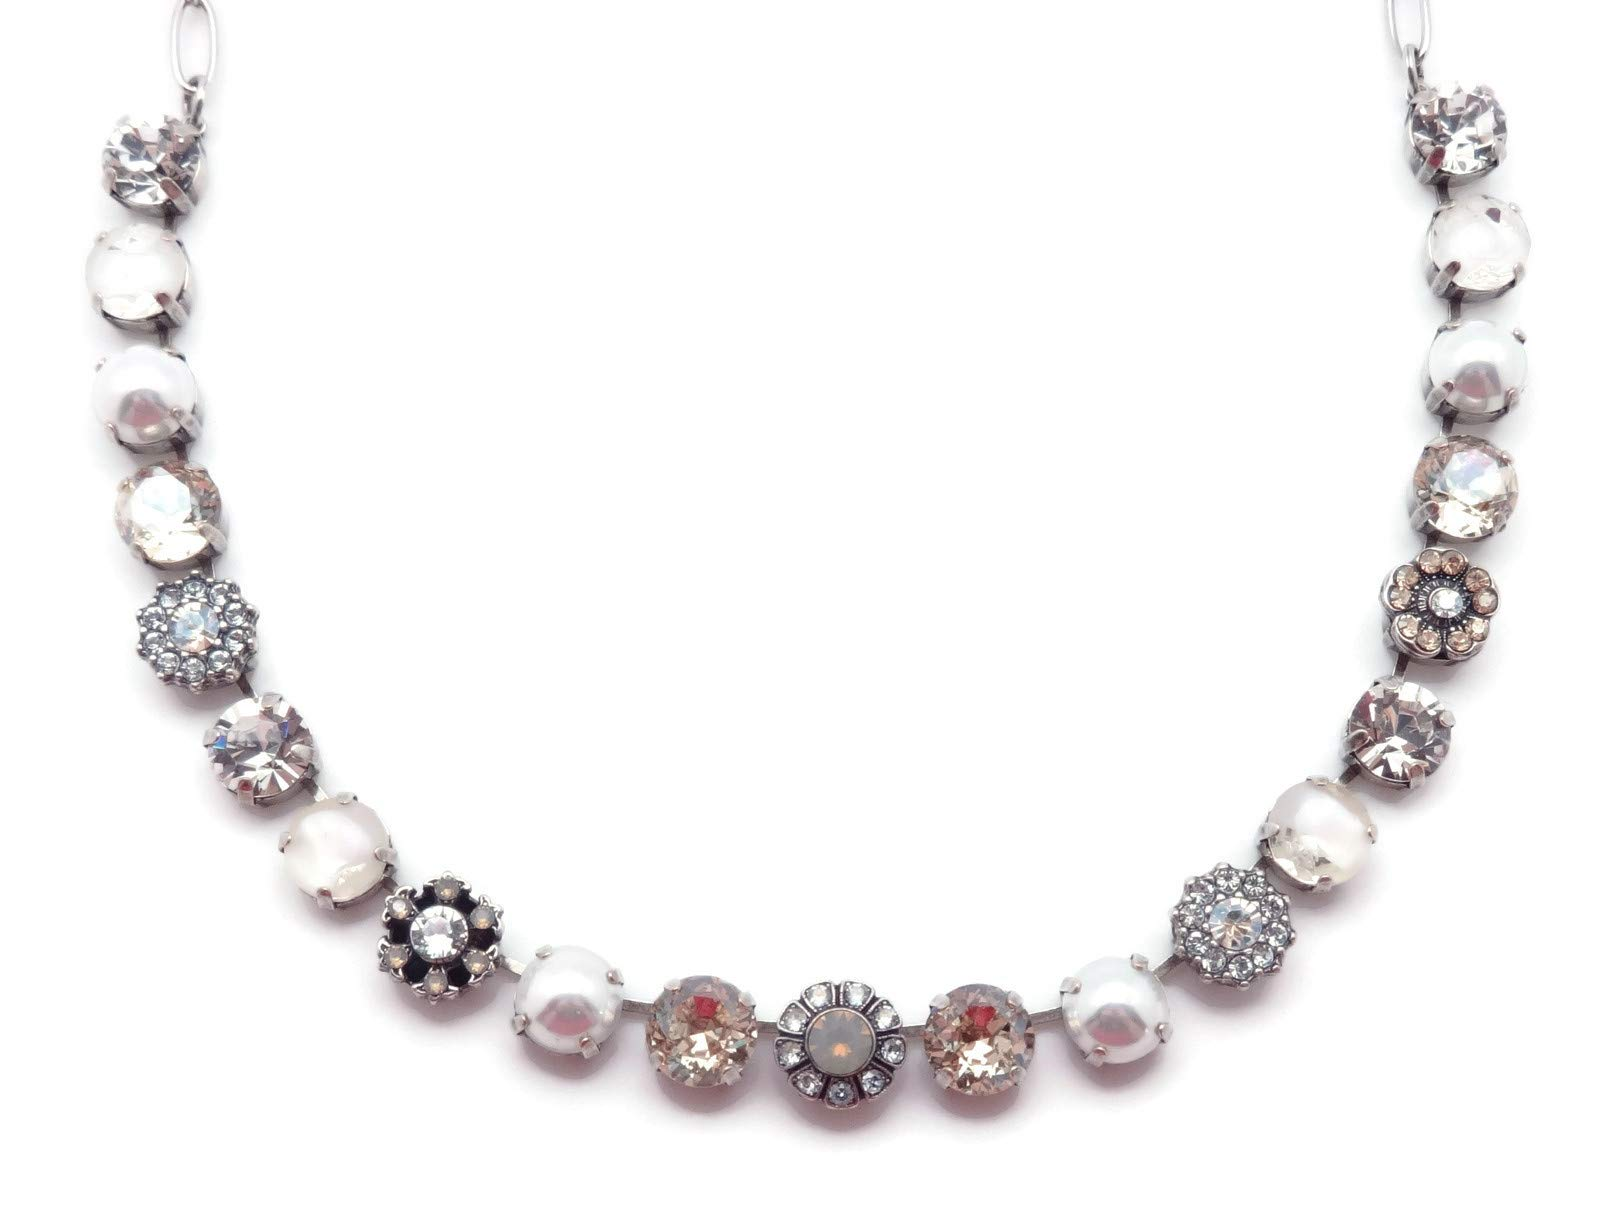 Mariana Seashell Swarovski Crystal Silvertone Necklace Clear & Light Silk Mix Mosaic Monroe M393612 by Mariana